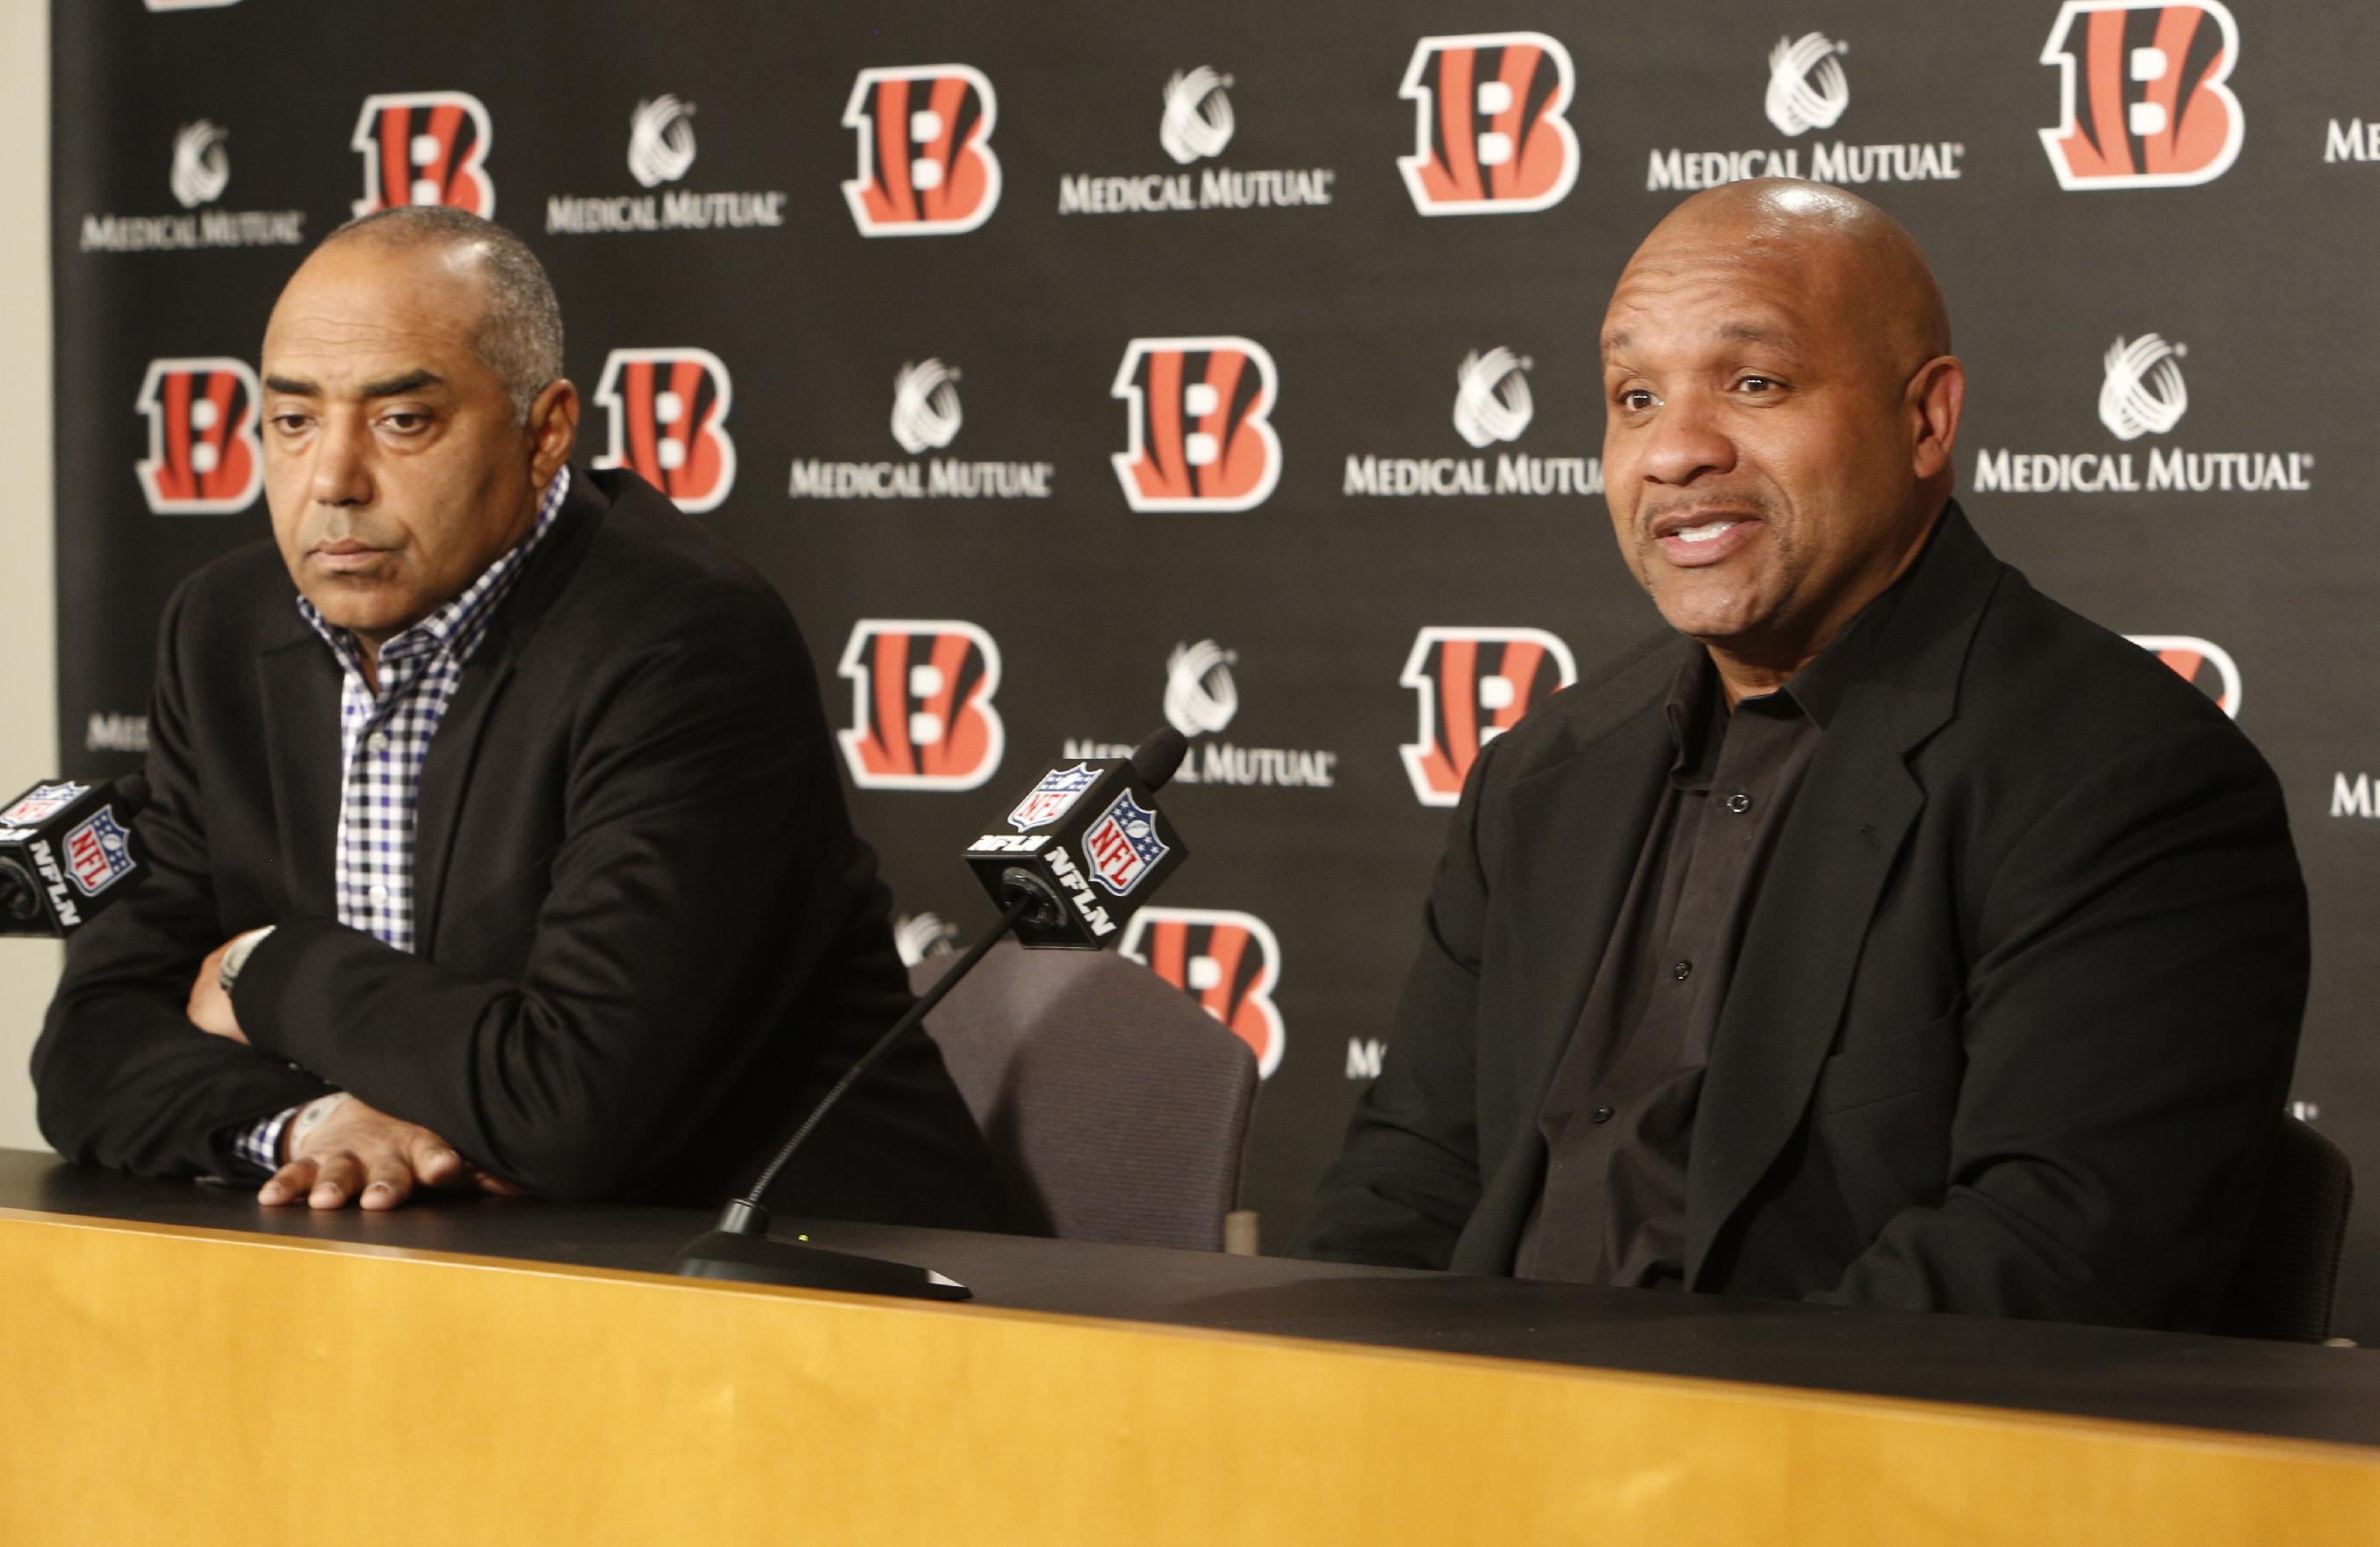 New Cincinnati Bengals offensive coordinator Hue Jackson, right, sits next to head coach Marvin Lewis, left, during a news conference, Friday, Jan. 10, 2014, in Cincinnati. Jackson replaces Jay Gruden who was named head coach of the Washington Redskins